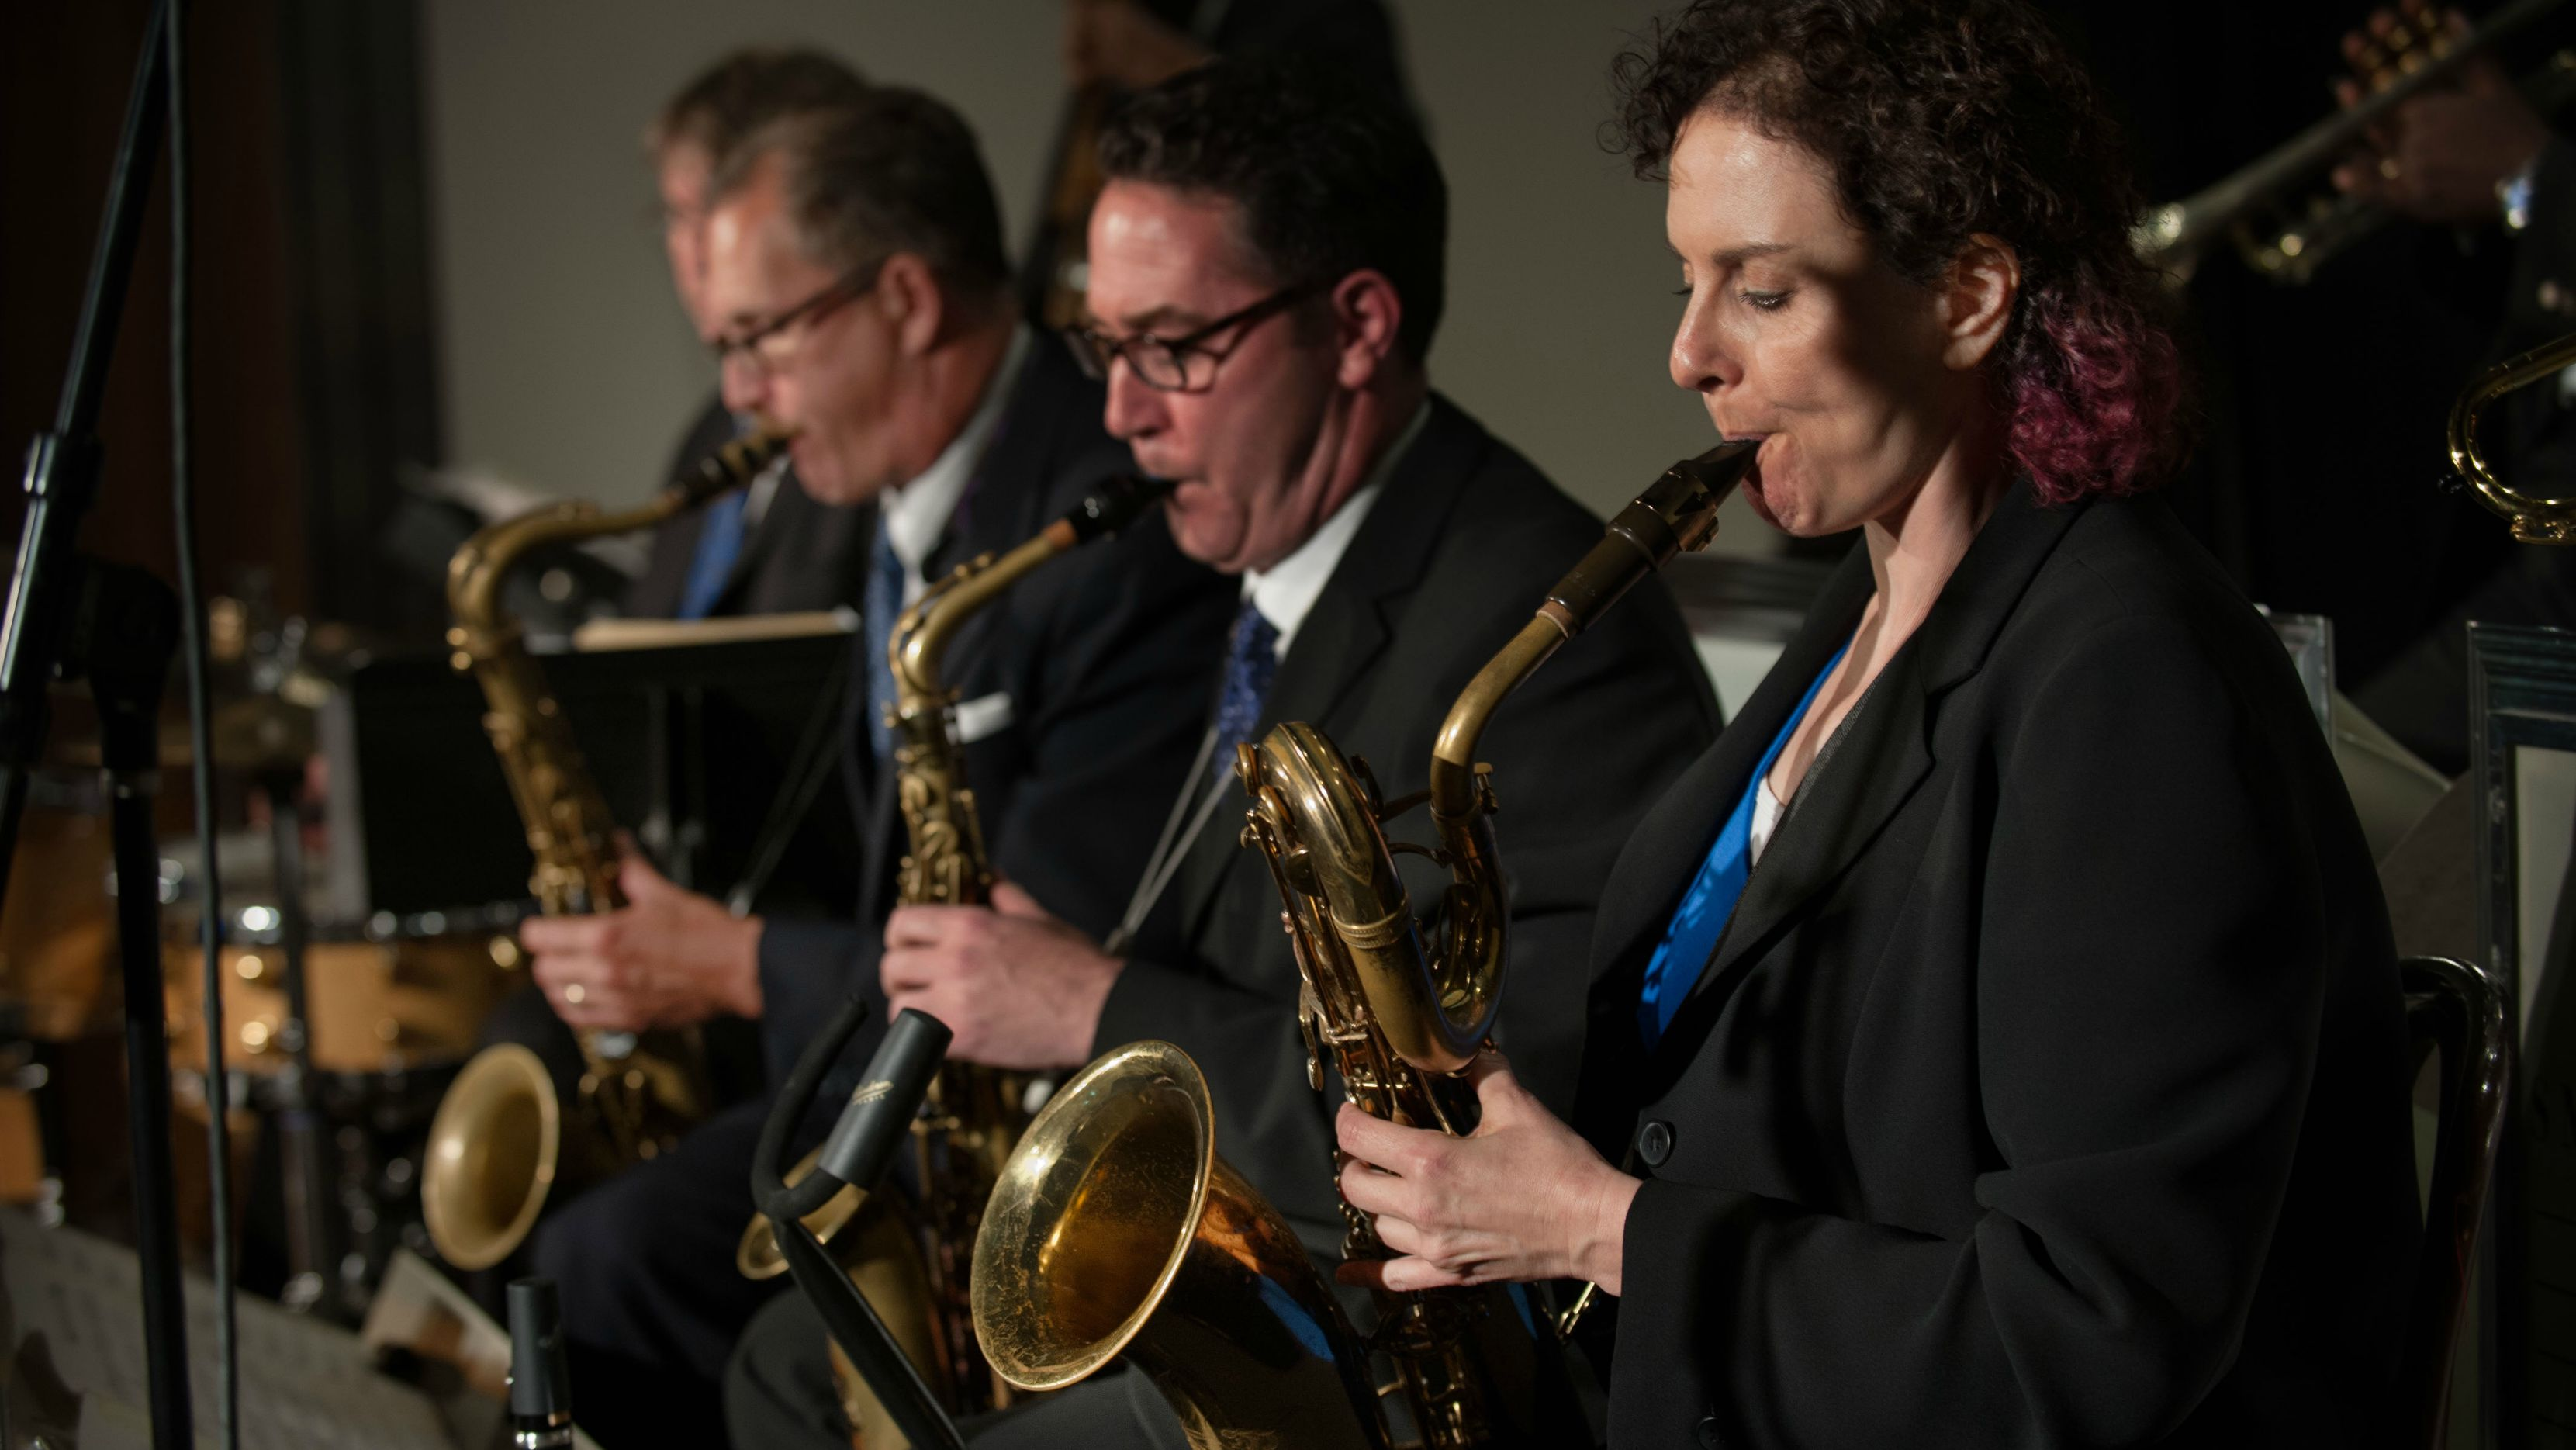 Four saxophonists